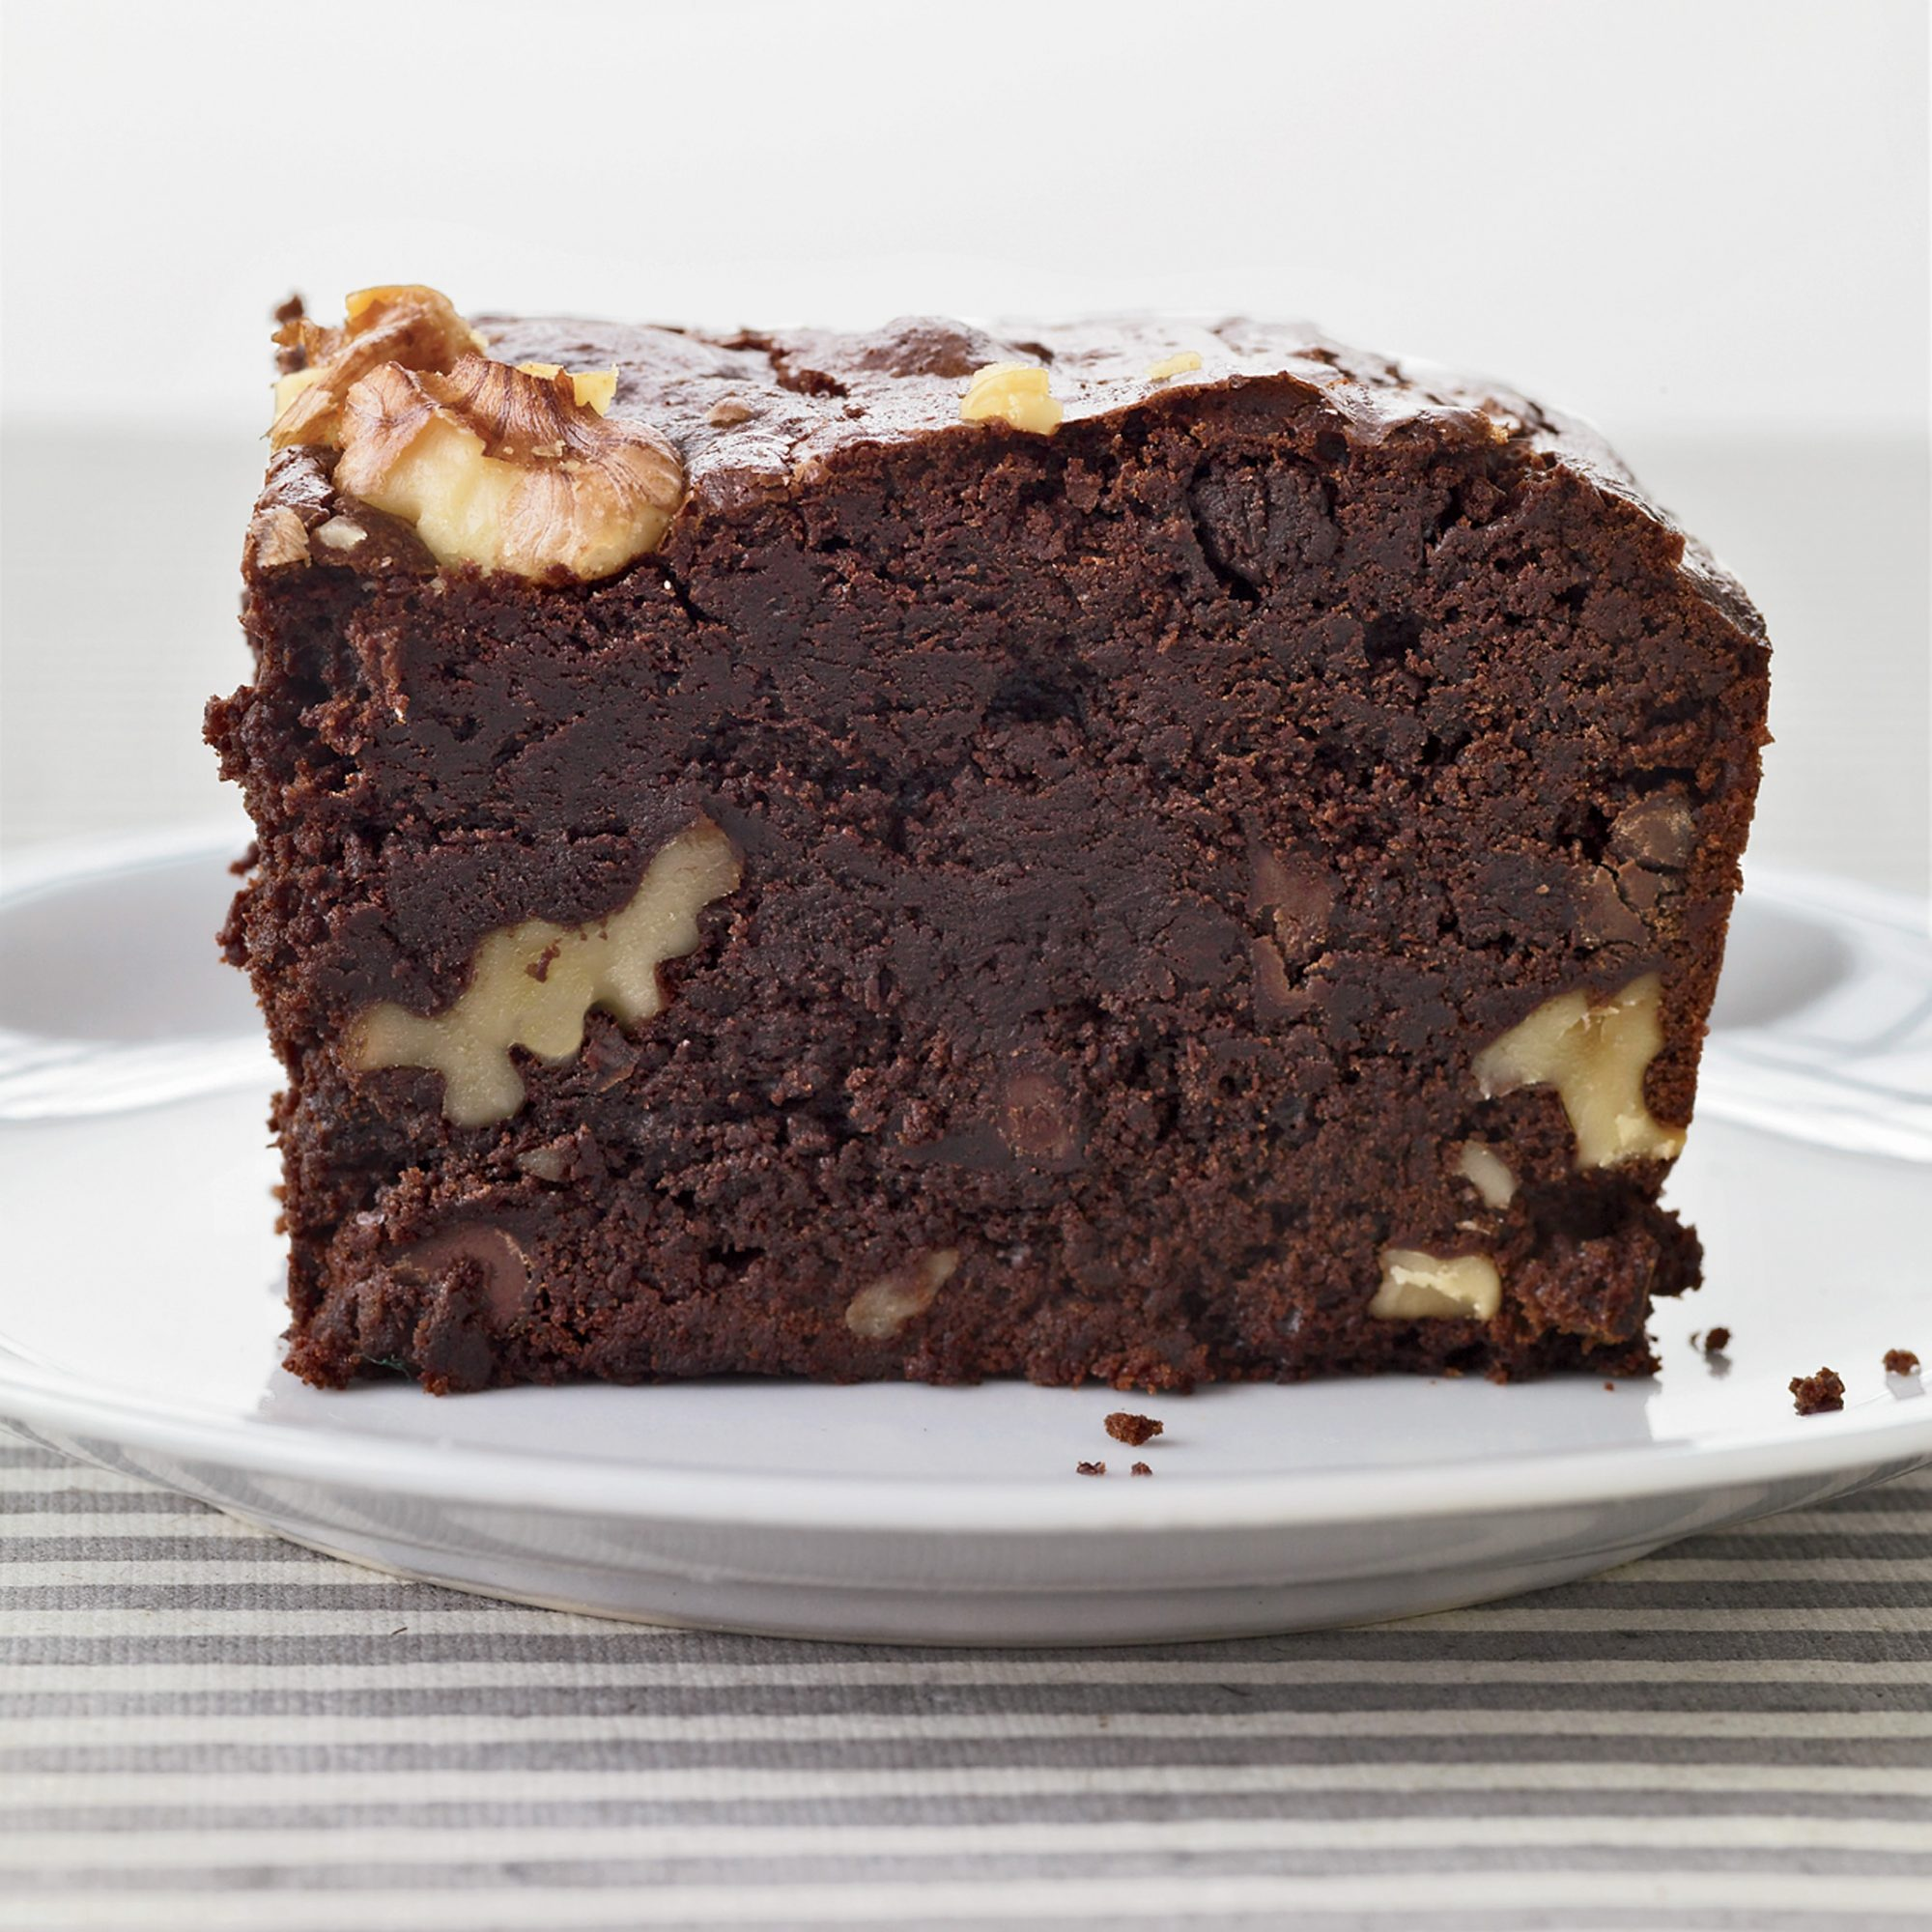 201007-r-jumbo-brownies.jpg